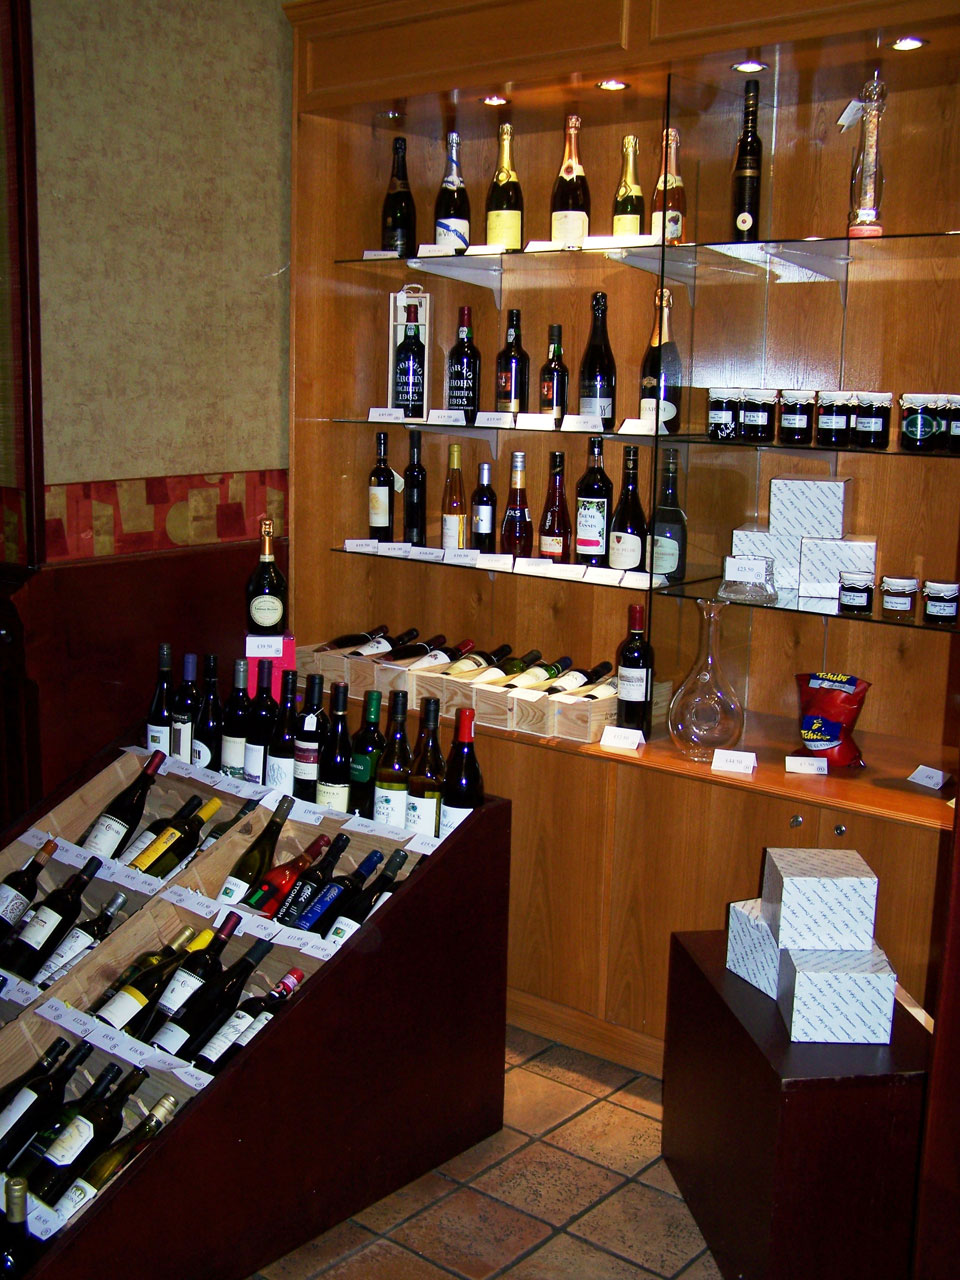 Pre-Stock Wine Bill passes